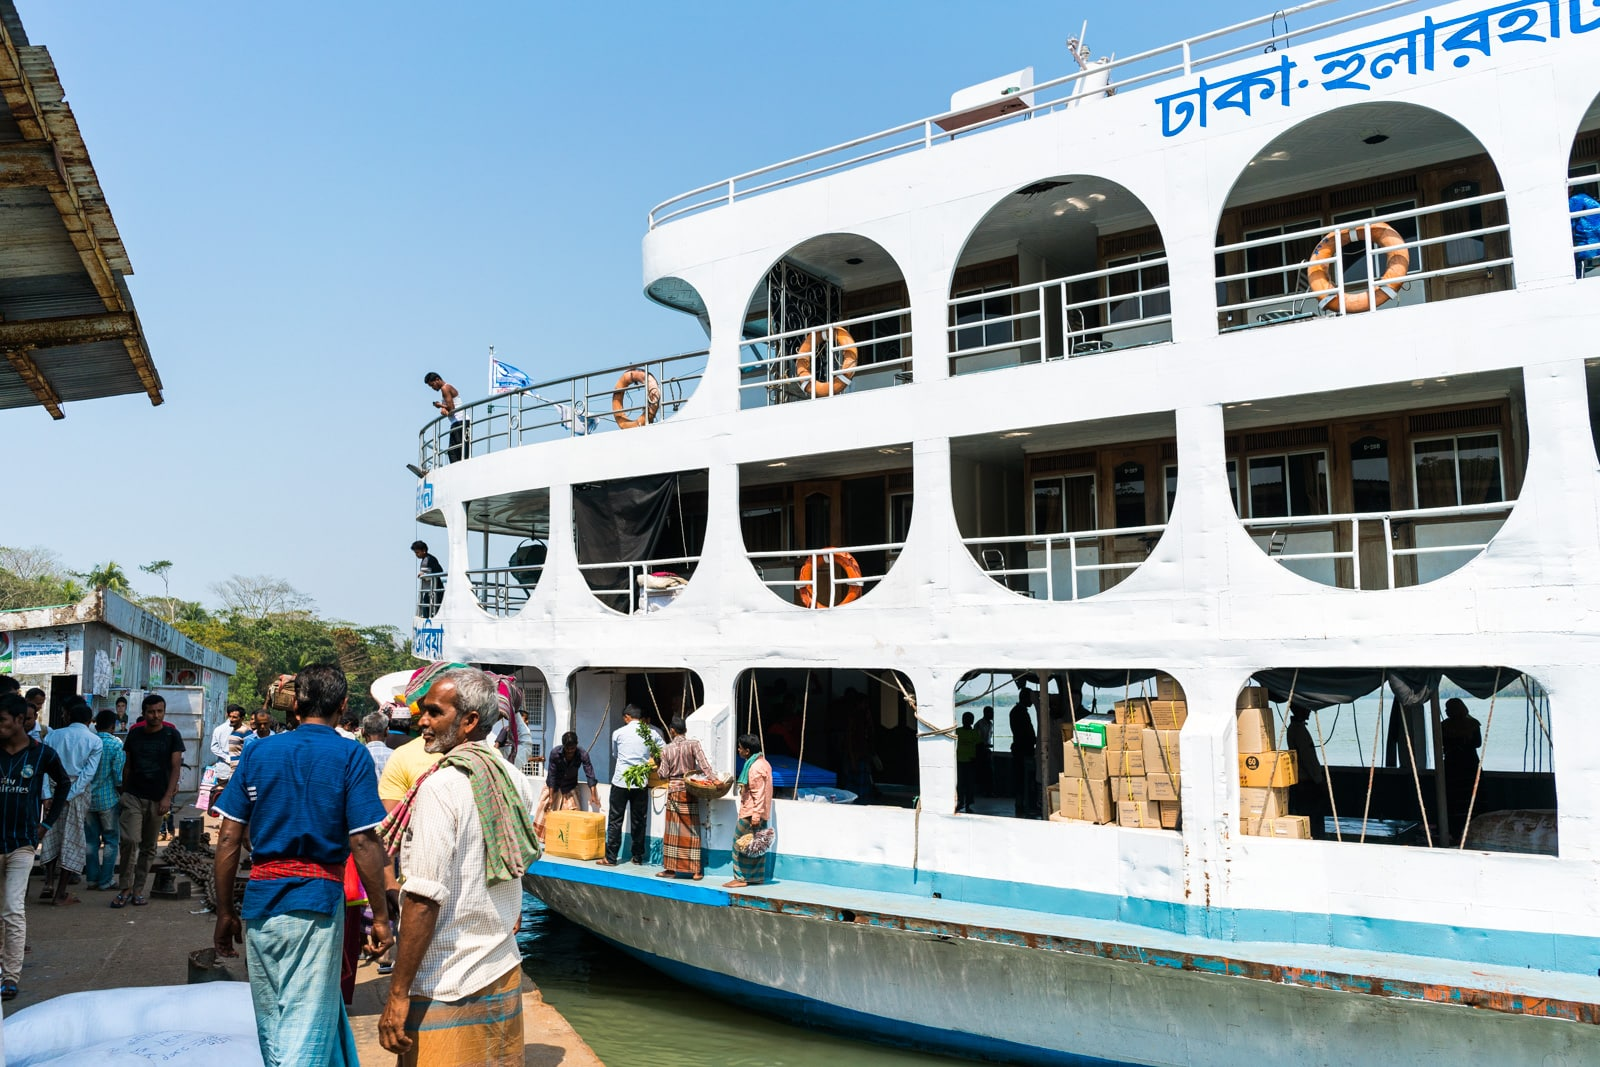 Guide to launches in Bangladesh - Launch boat arriving at Hularhat launch ghat - Lost With Purpose travel blog